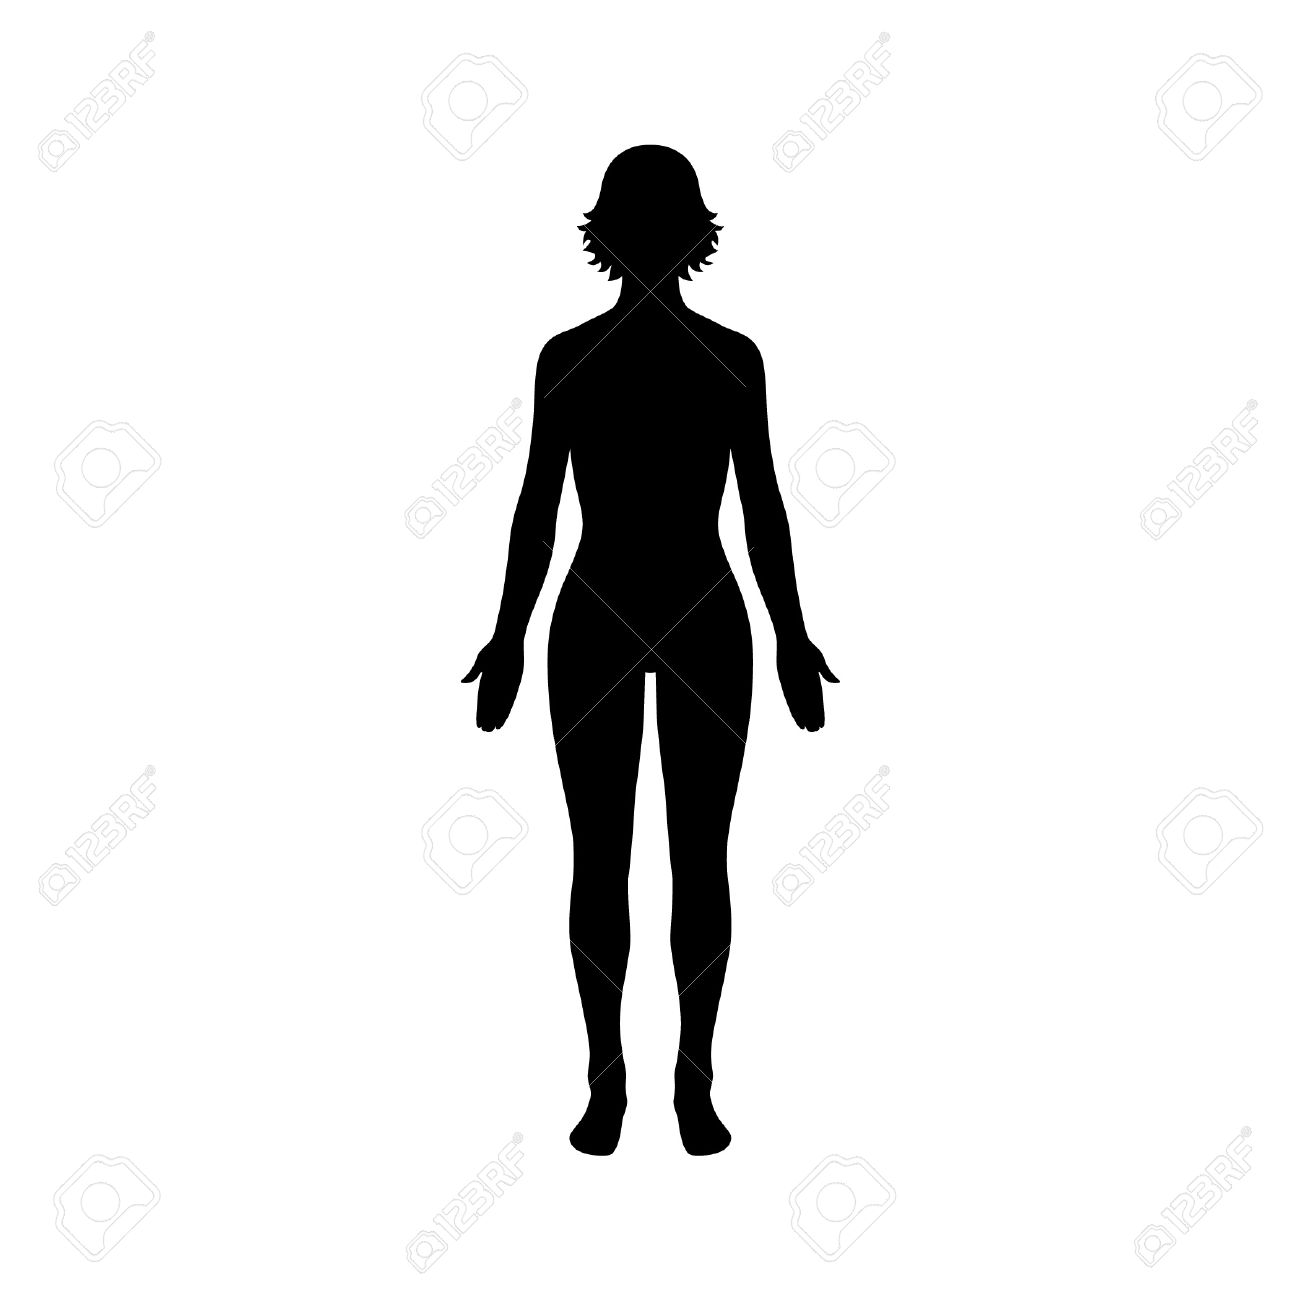 Body woman. Silhouette clipart free download